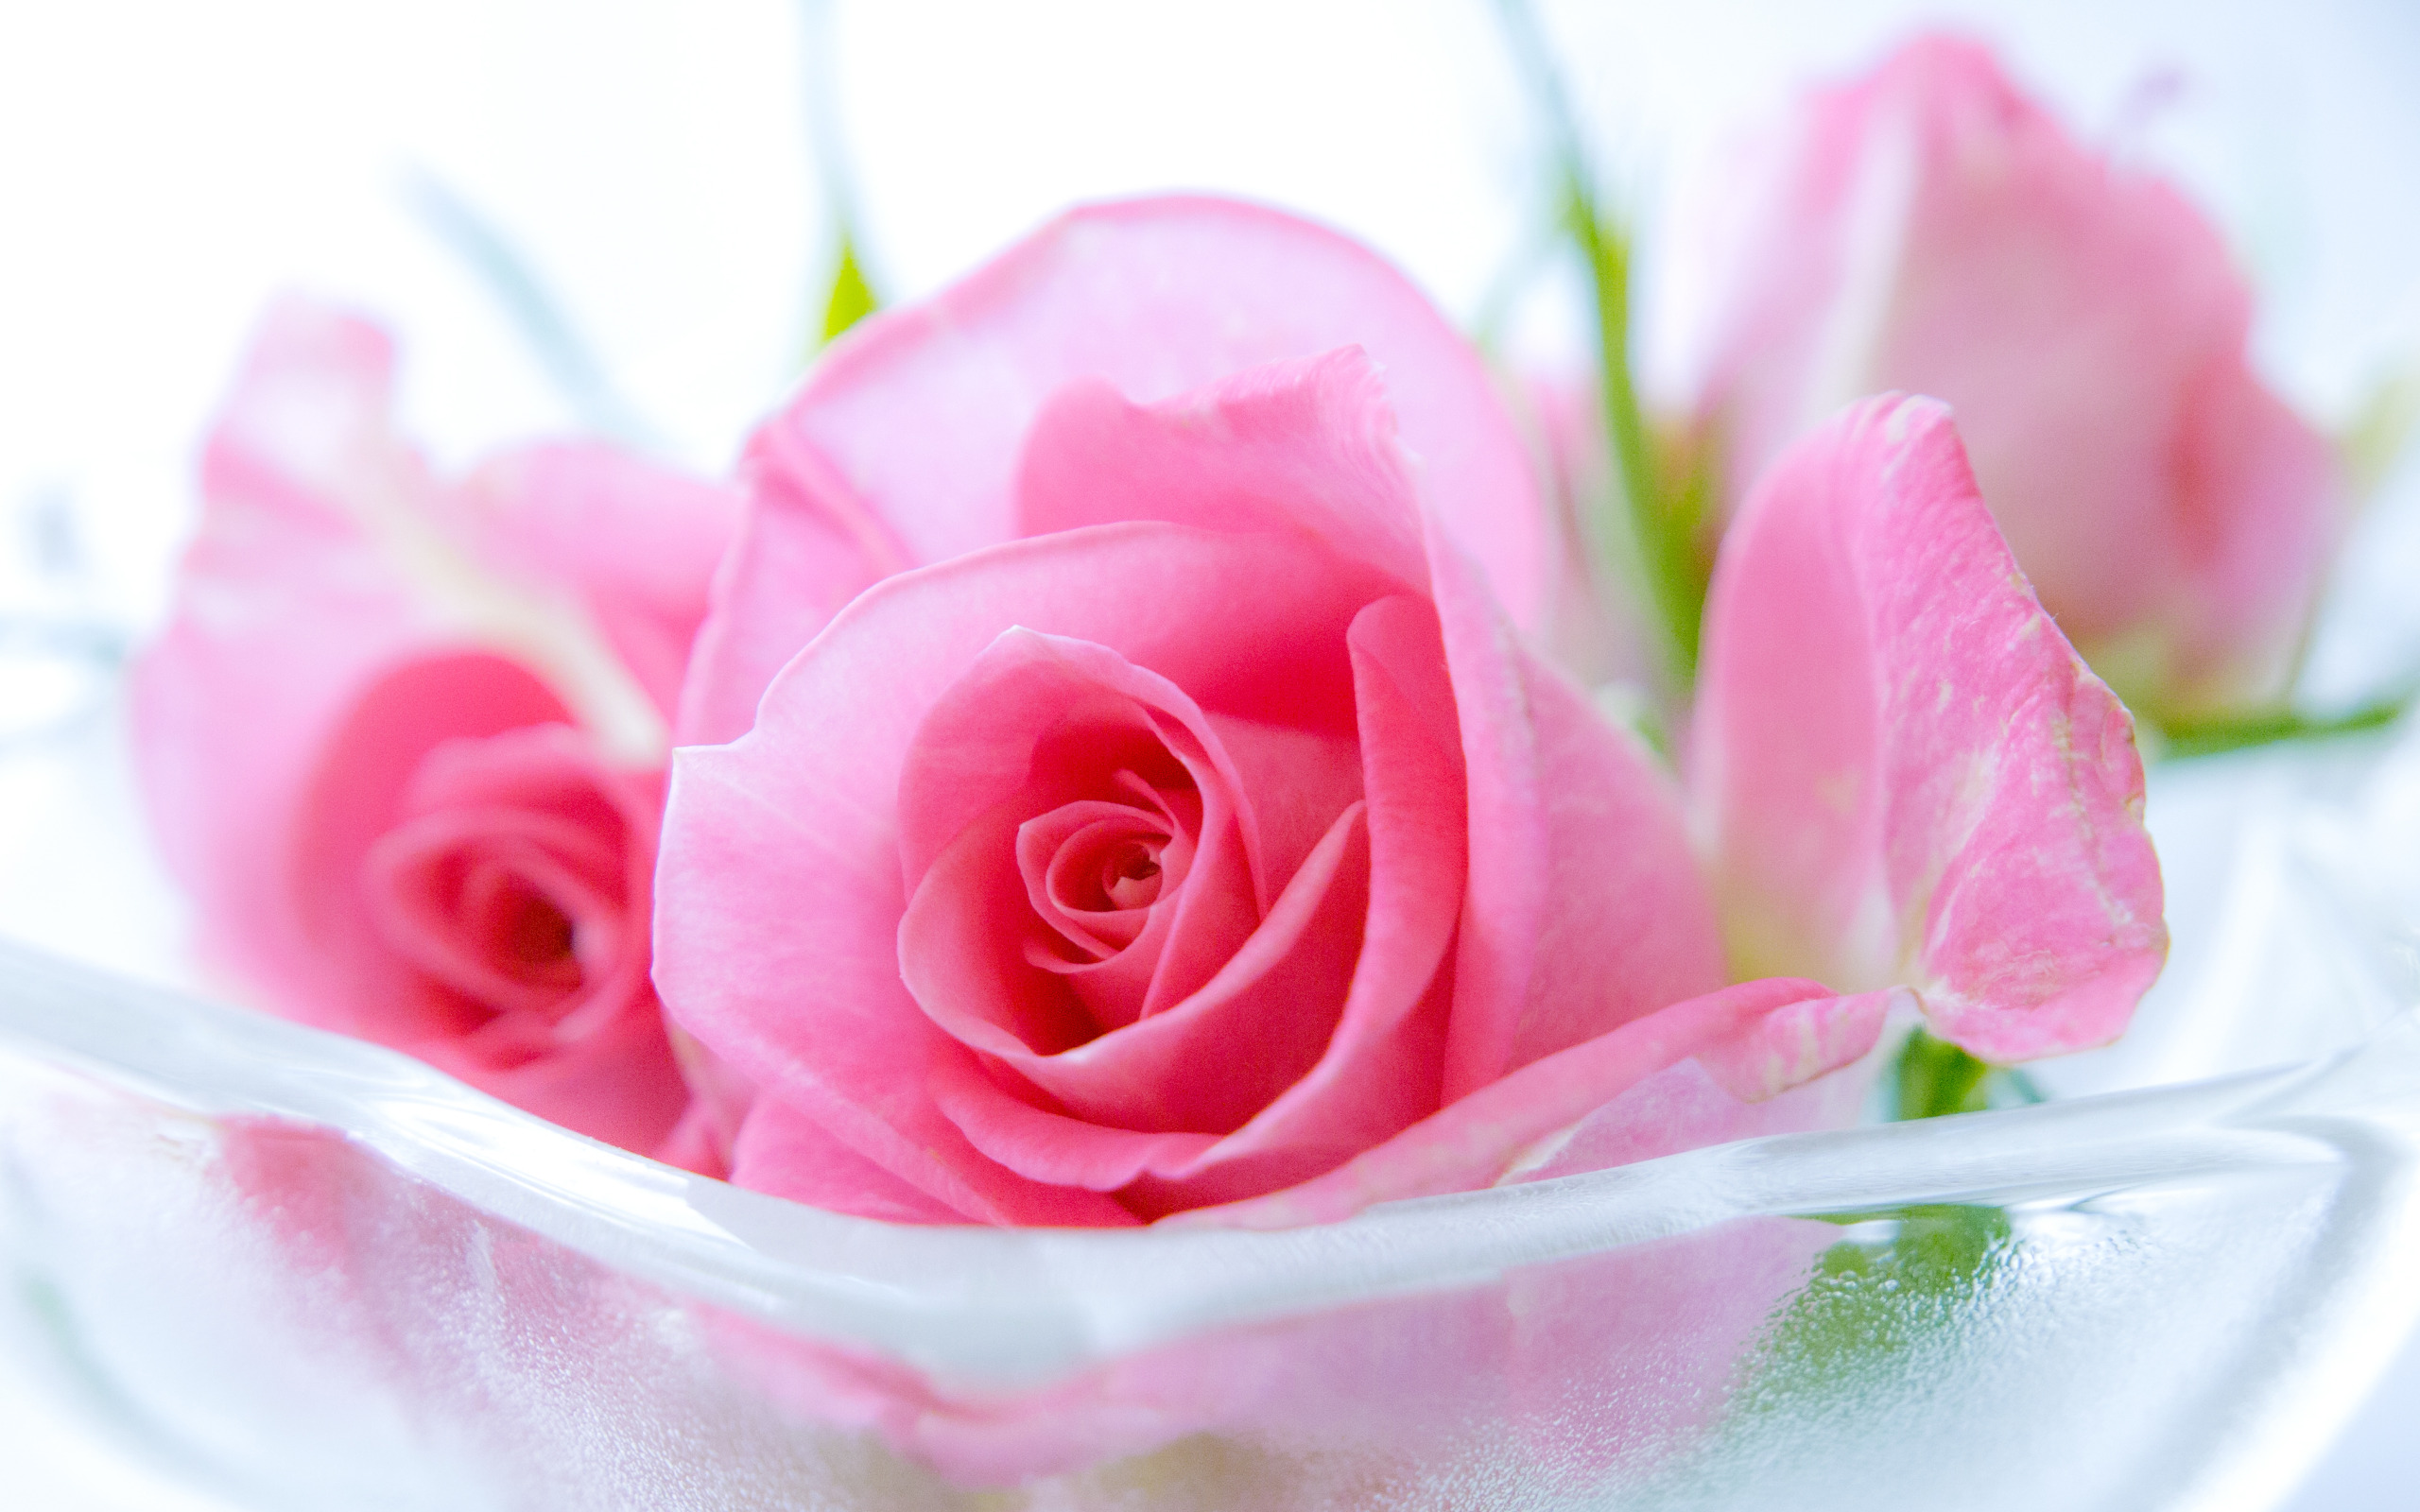 Pink Roses Widescreen   Wallpaper High Definition High Quality 2560x1600